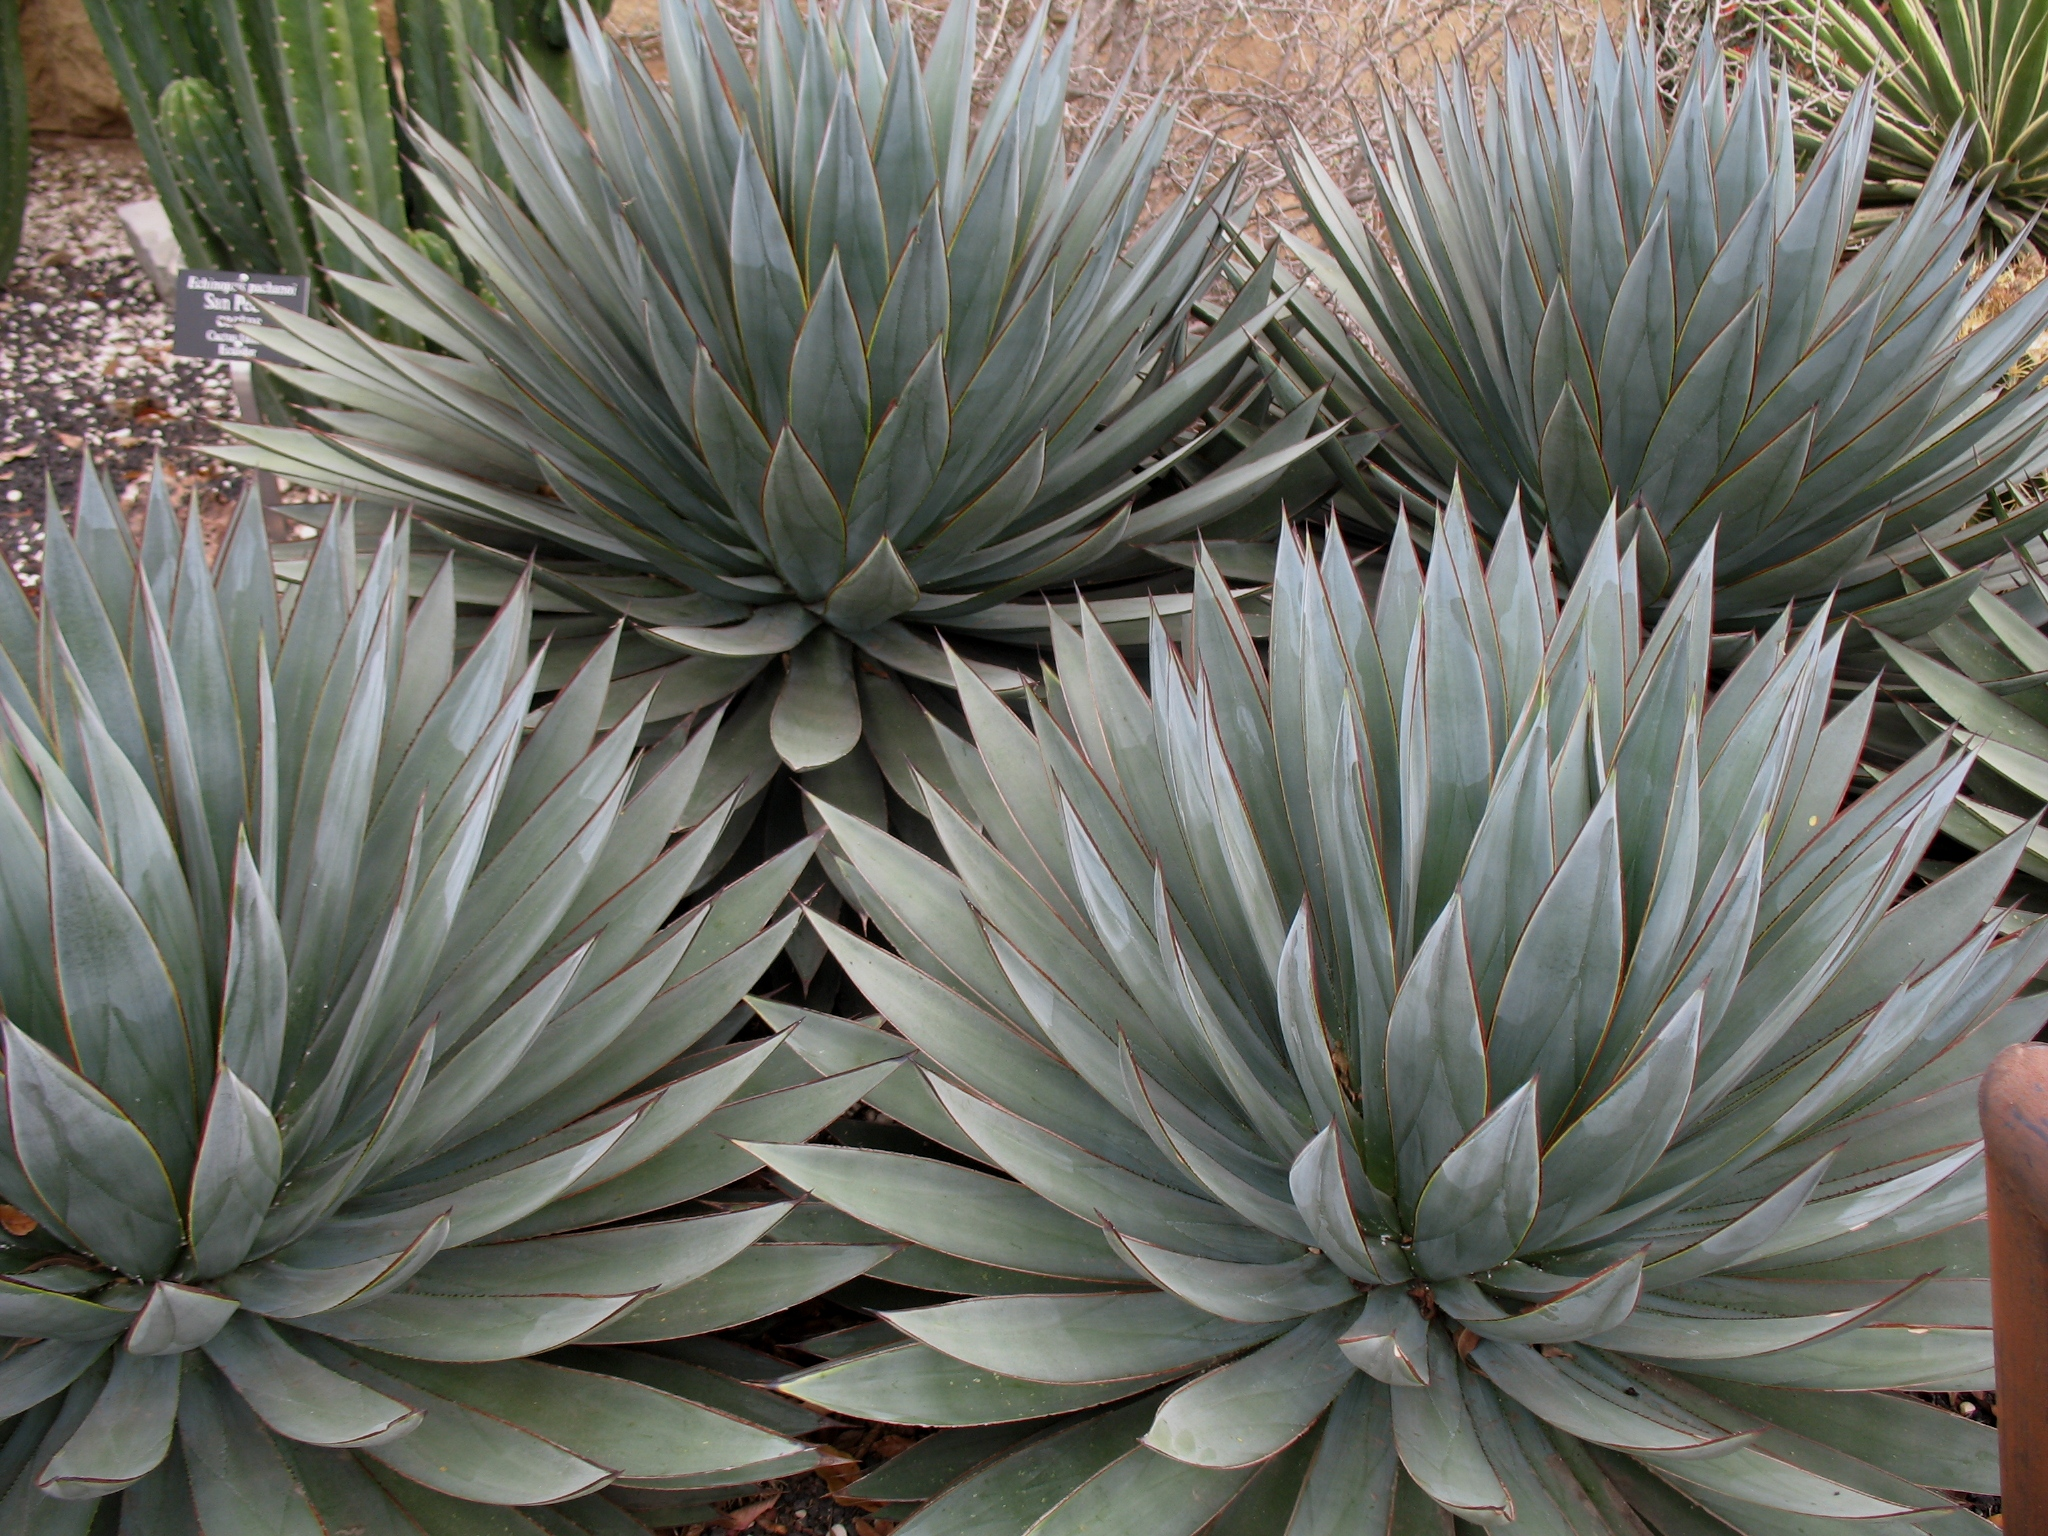 Agave 'Blue Glow' / Agave 'Blue Glow'